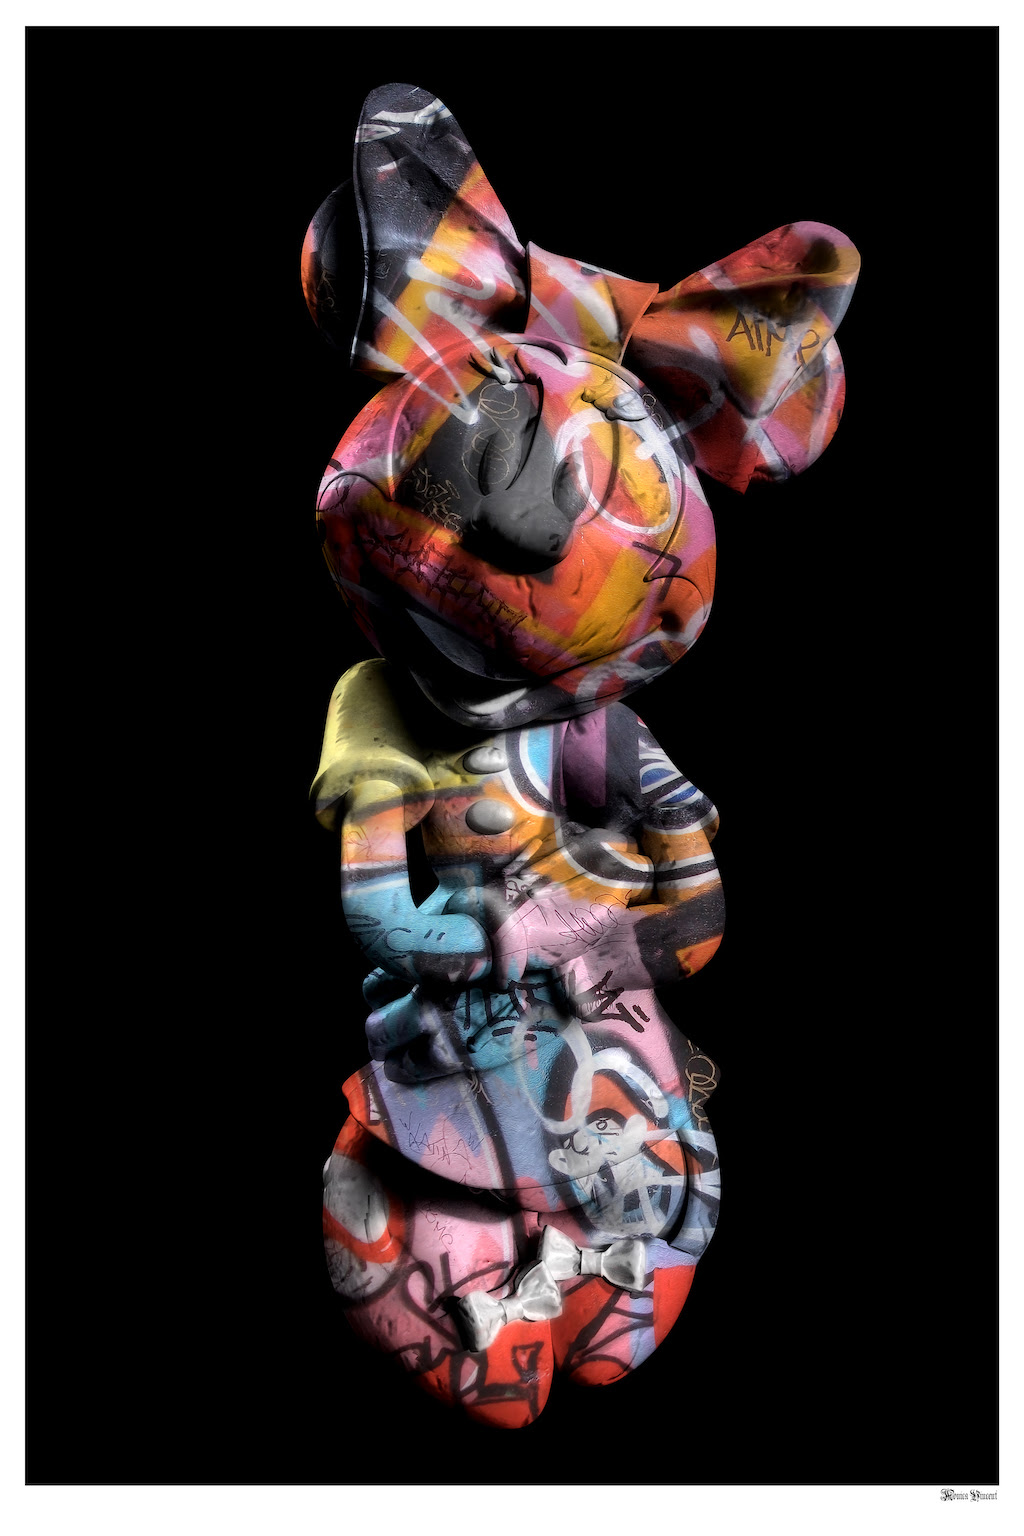 Graffiti Minnie (Black Background) - Large - Framed by Monica Vincent